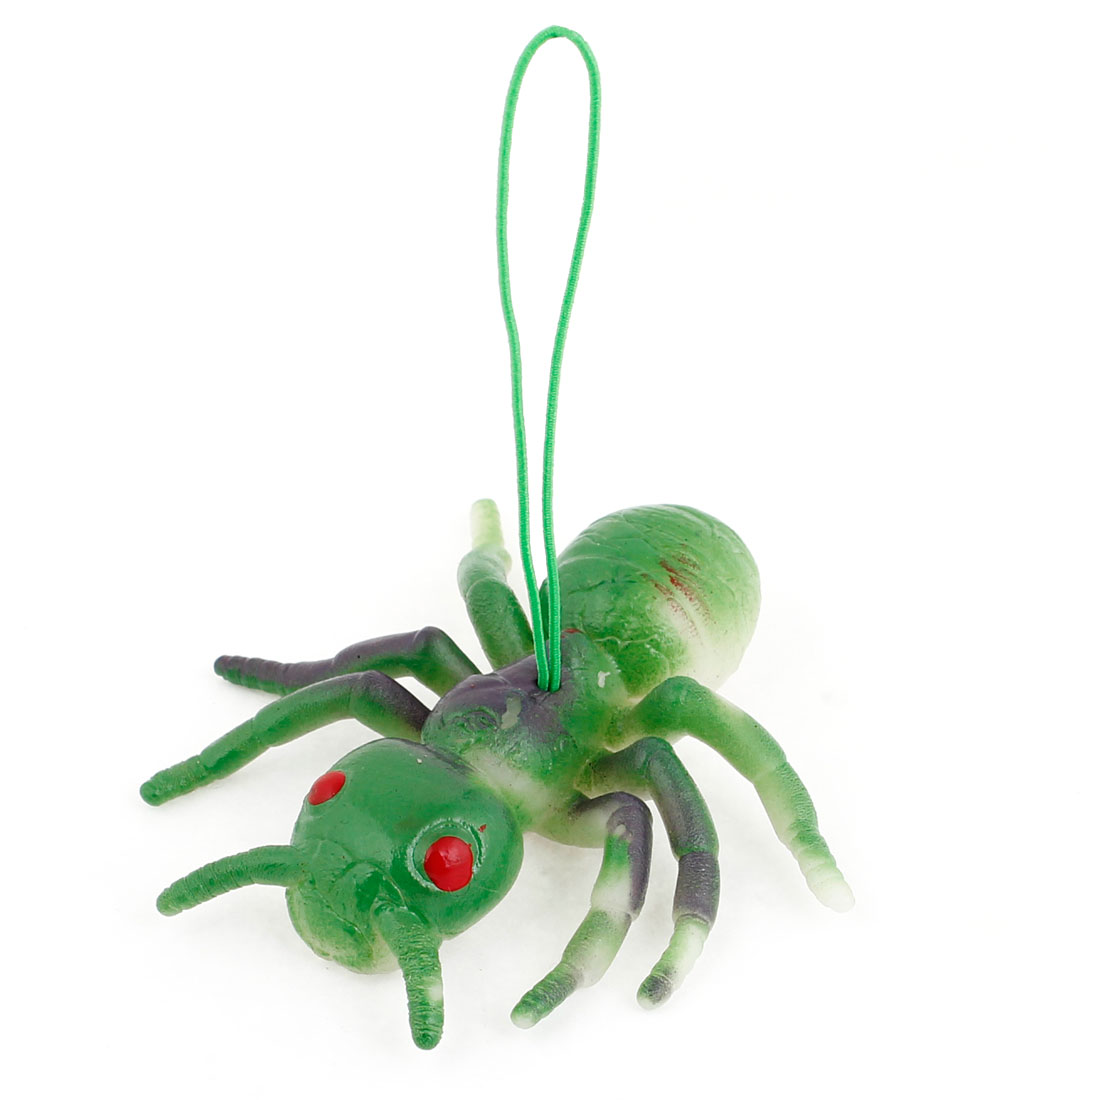 Green Black Silicone Artificial Ant Shaped Pendant Phone Strap